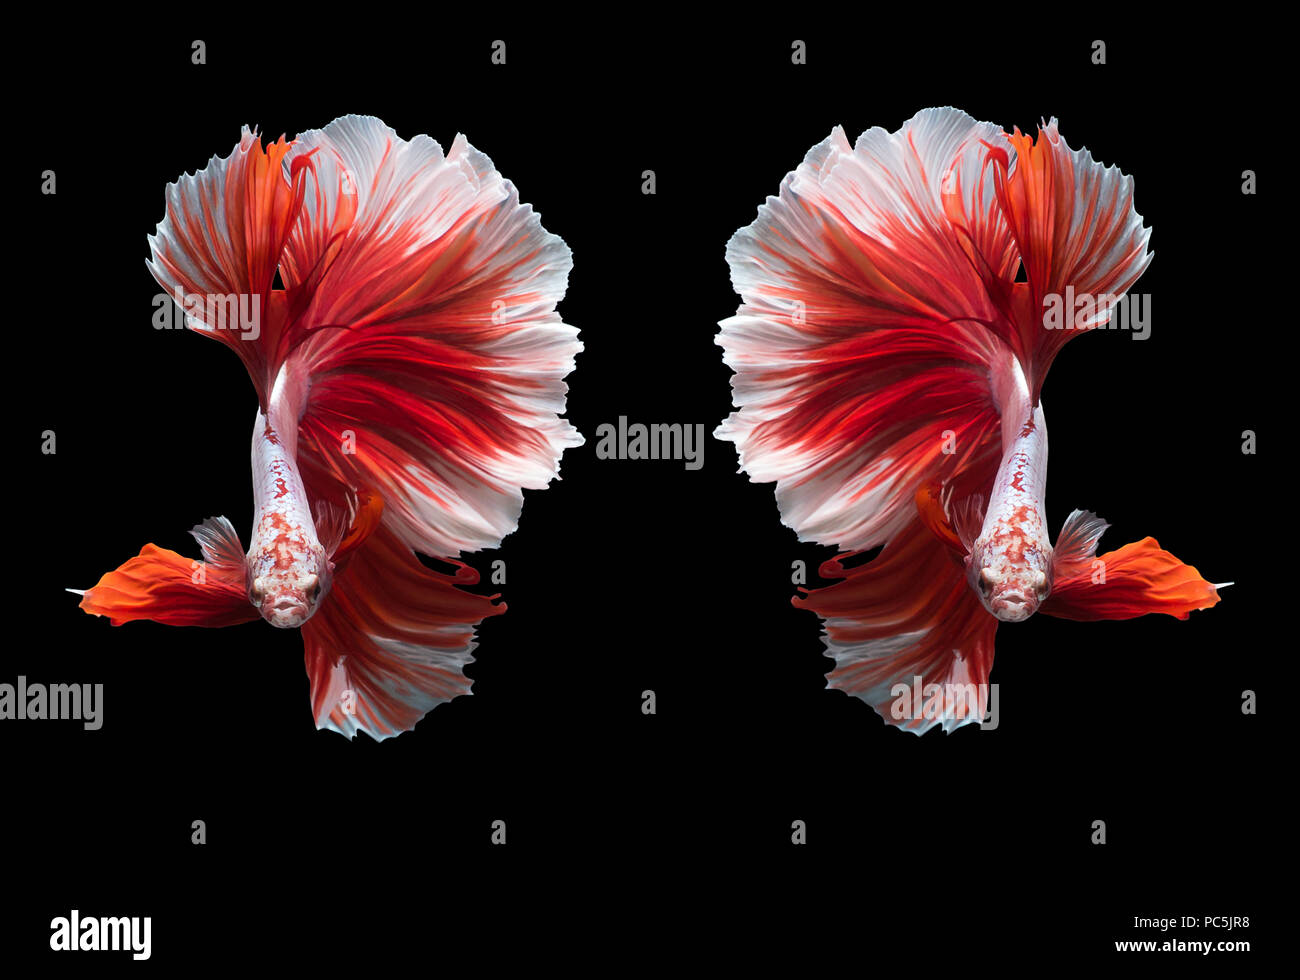 Capture the moving moment of white siamese fighting fish isolated on black background Stock Photo